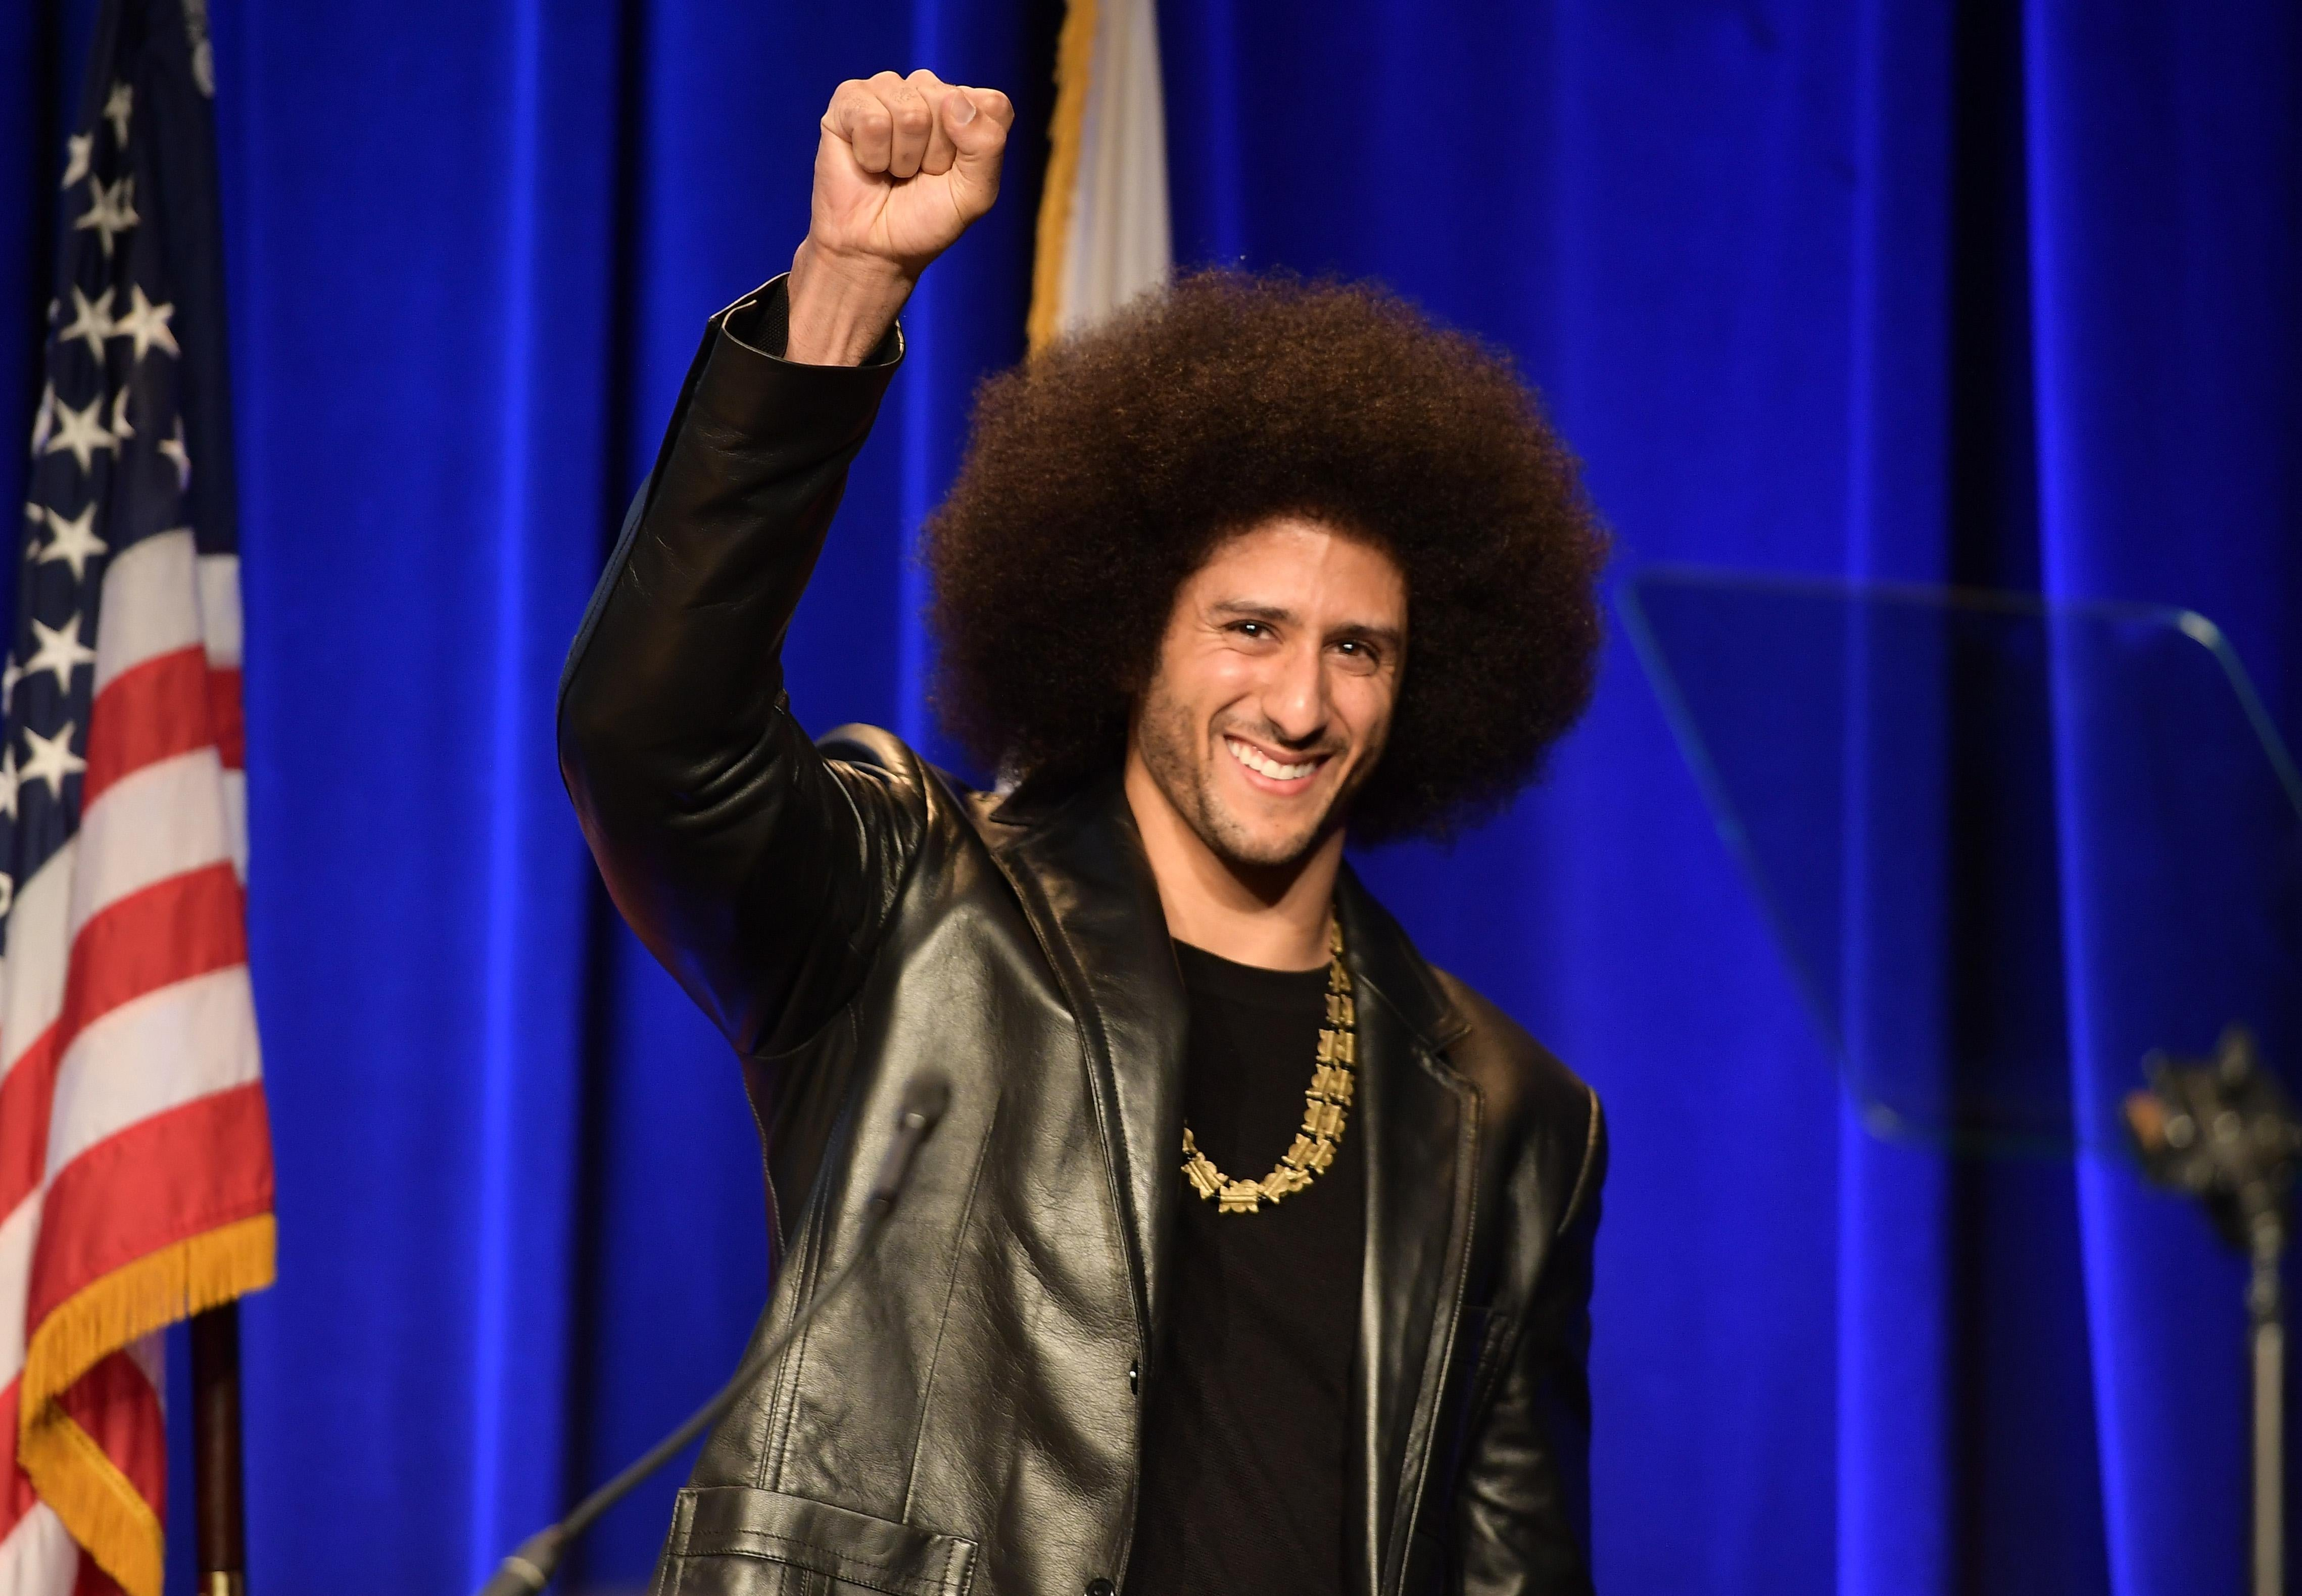 Colin Kaepernick speaks at an ACLU event on December 3, 2017 in Beverly Hills, California.